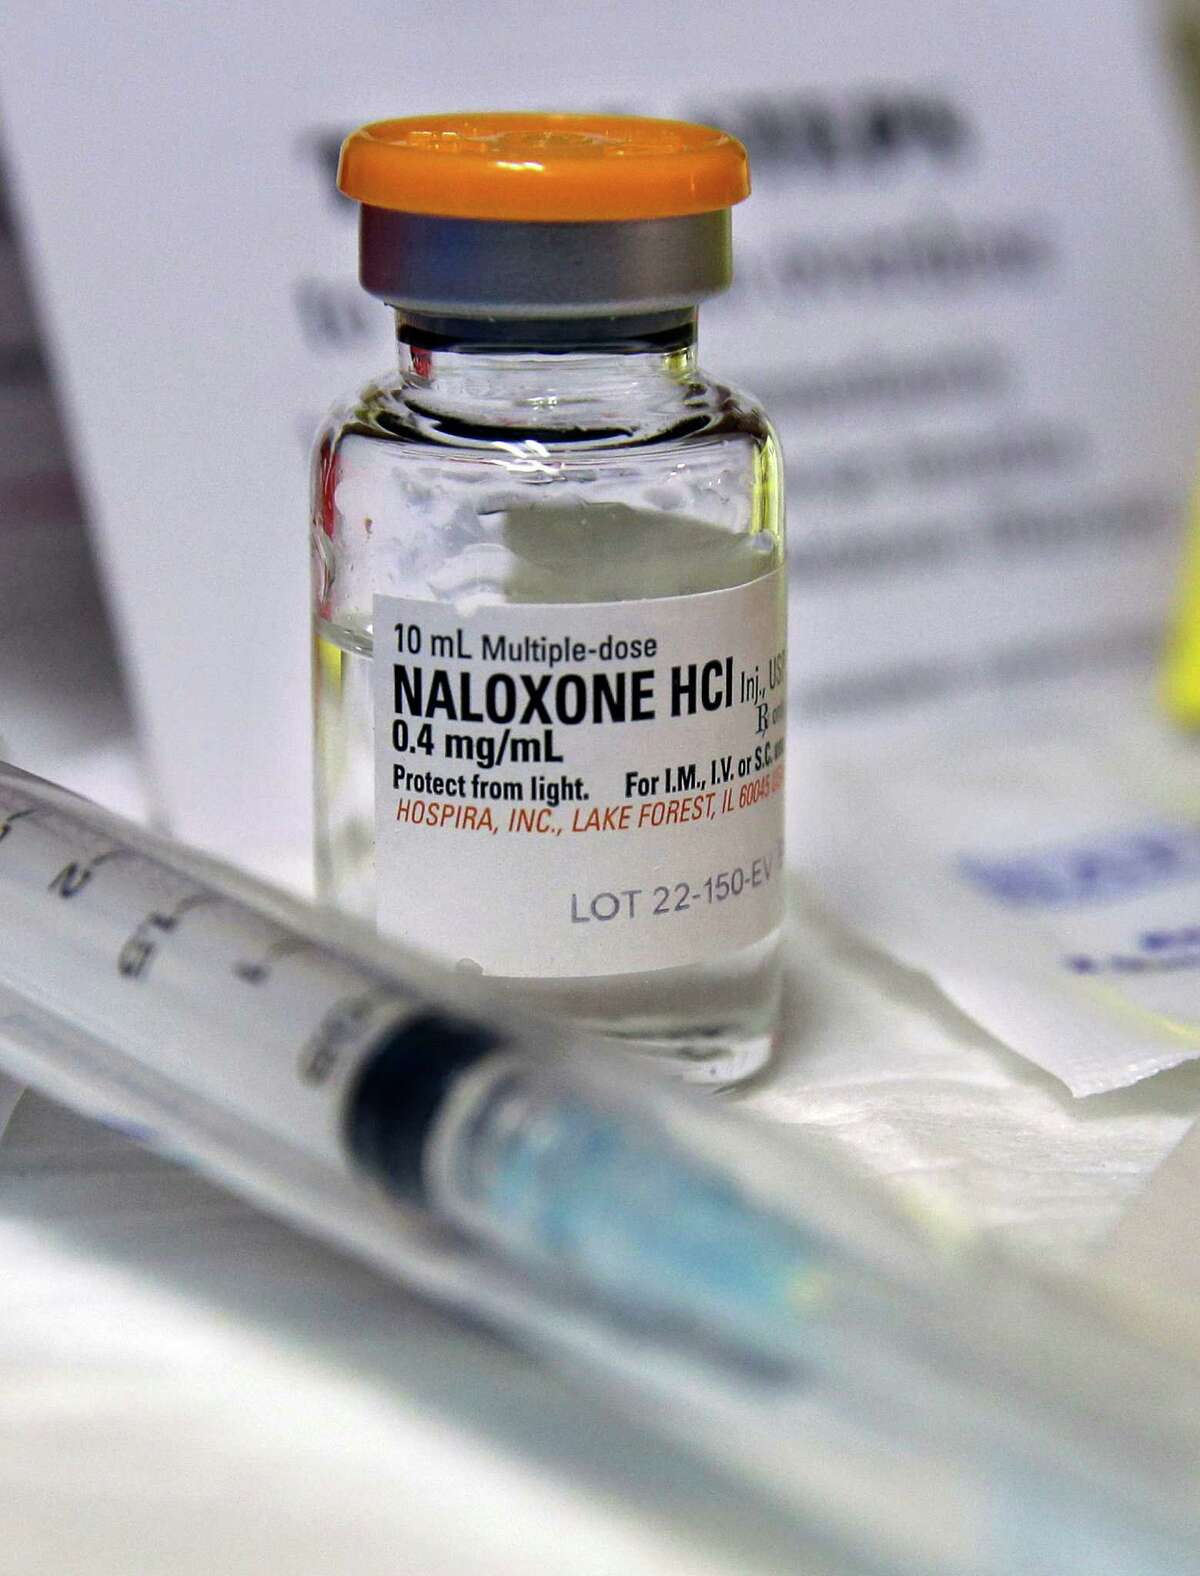 FILE- In this Wednesday, Feb. 19, 2014, file photograph, a small bottle of the opiate overdose treatment drug, naloxone, also known by its brand name Narcan, is displayed at the South Jersey AIDS Alliance in Atlantic City, N.J. It is becoming easier for friends and family of heroin users or patients abusing strong prescription painkillers to get access to naloxone, a powerful, life-saving antidote, as state lawmakers loosen restrictions on the medicine to fight a growing epidemic. (AP Photo/Mel Evans, File) ORG XMIT: NYBZ501